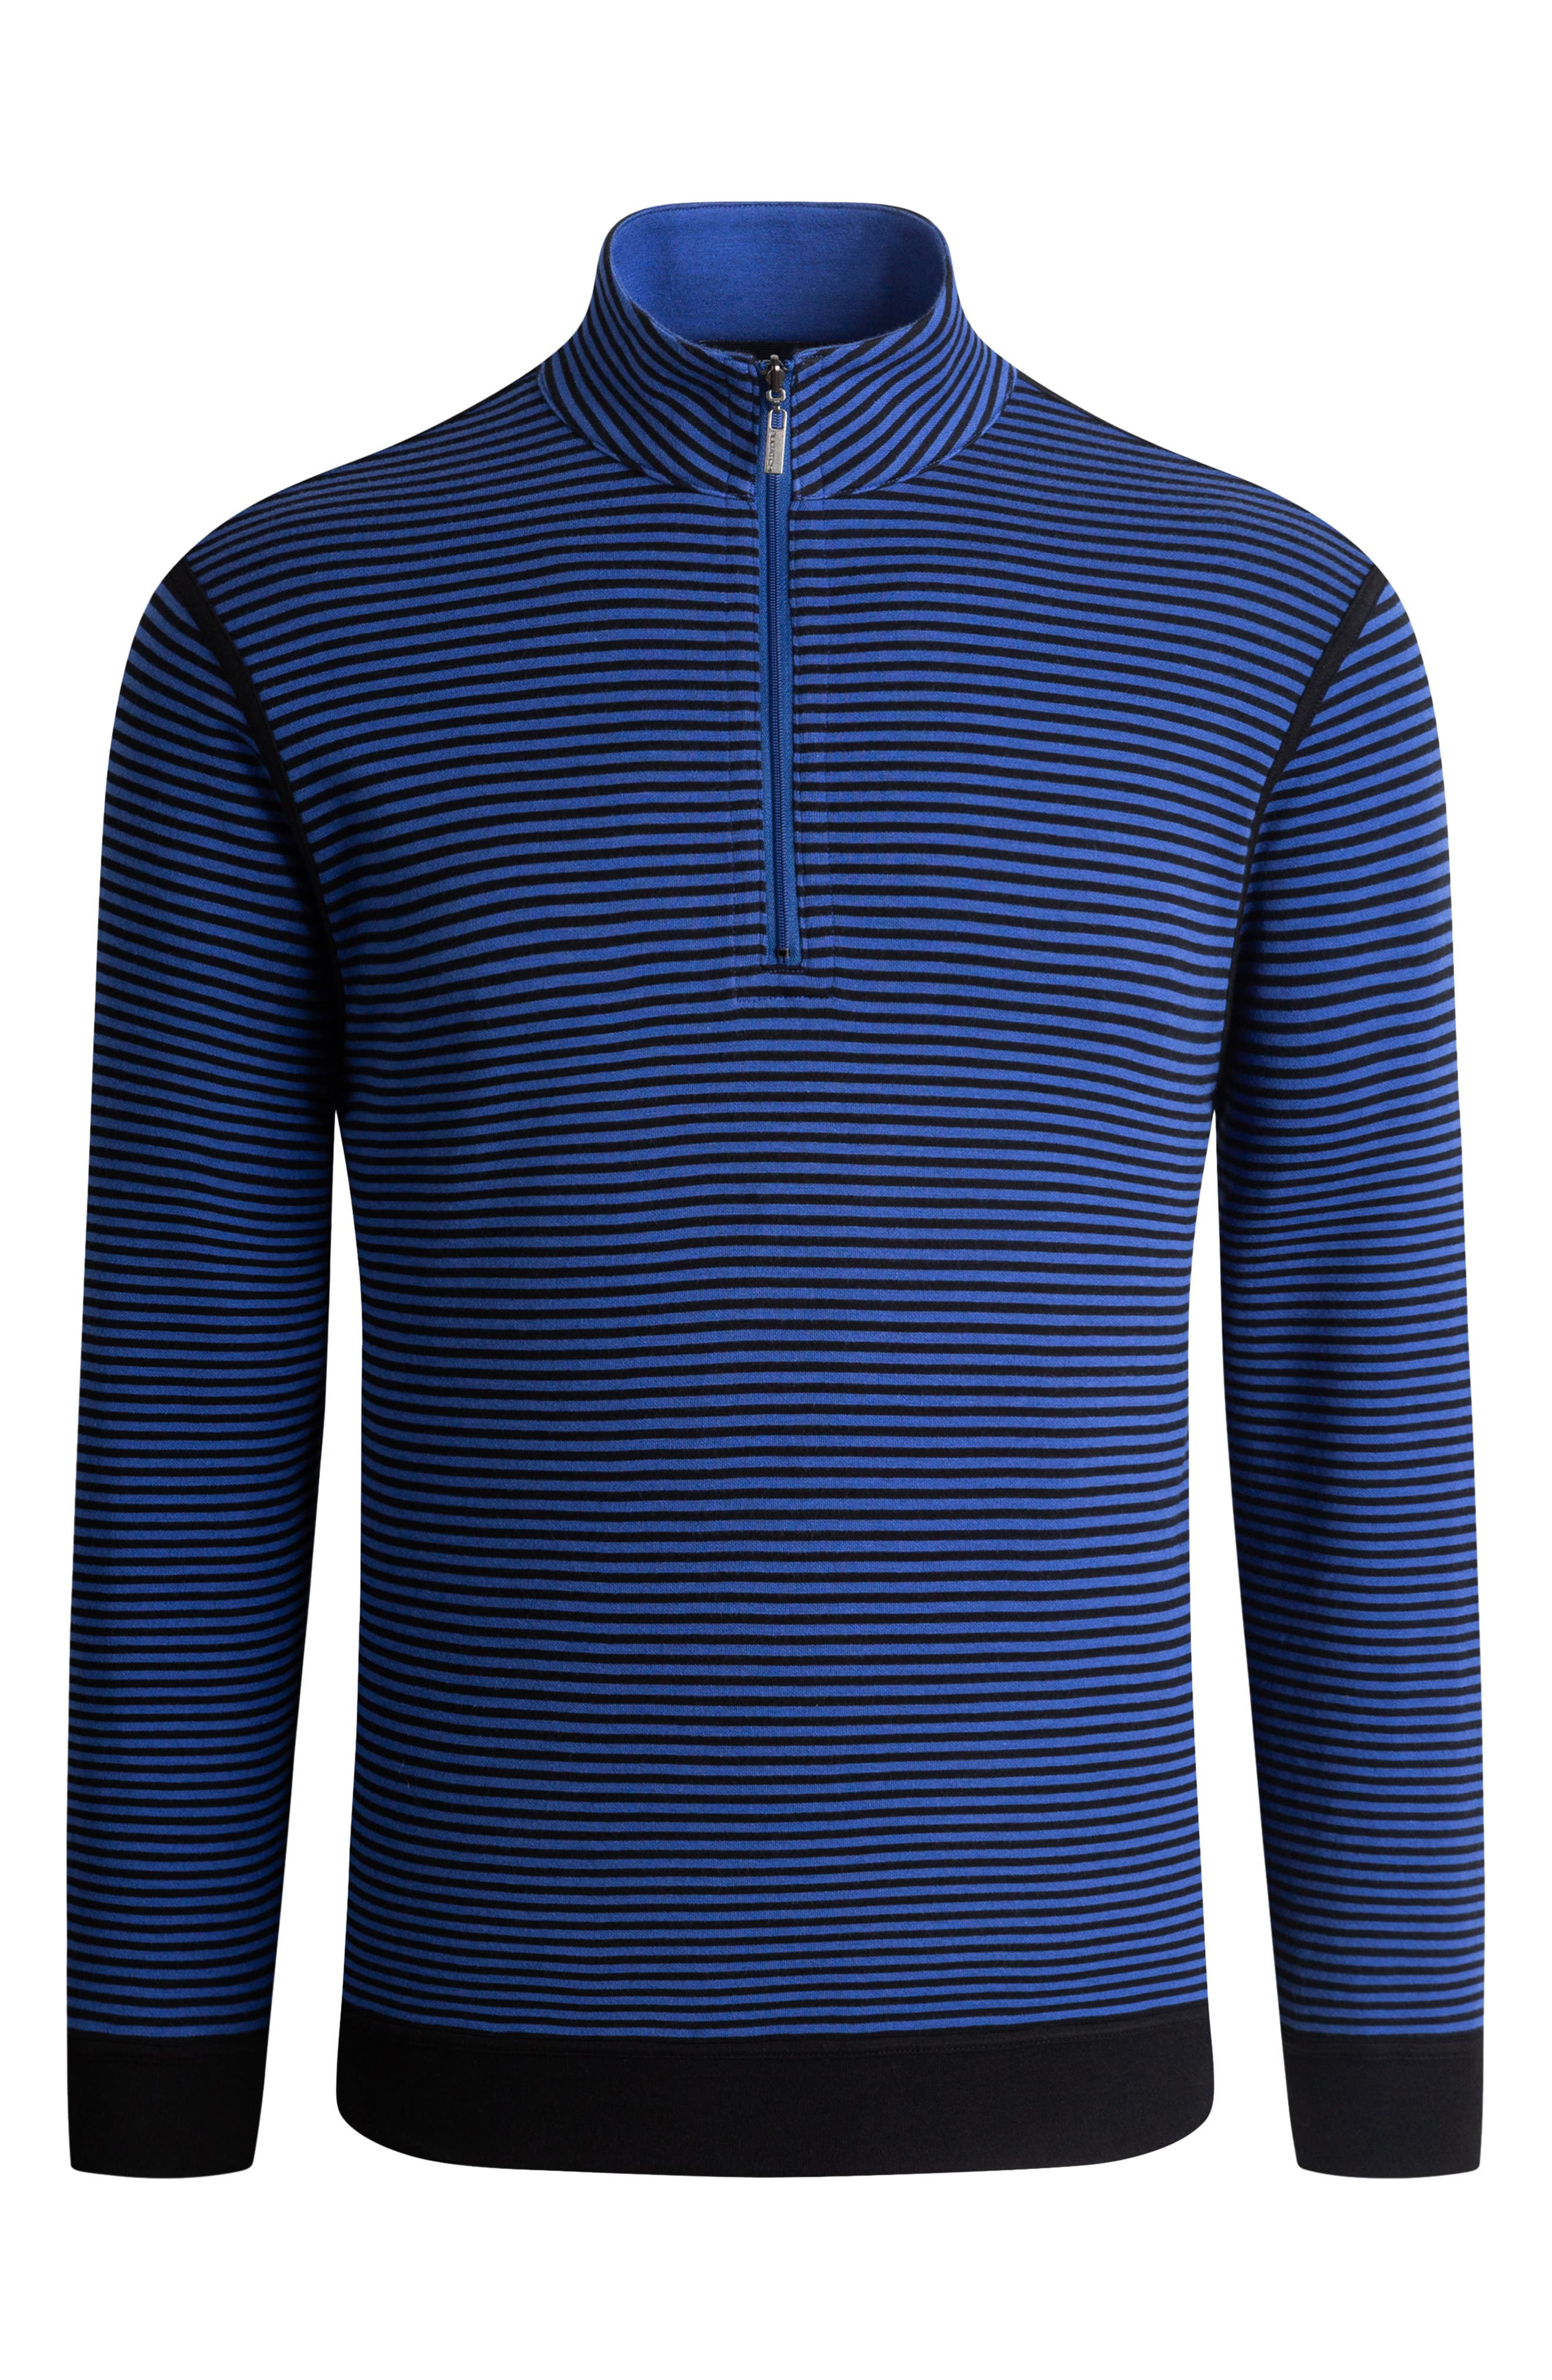 Sporty, casual design defines a smart pullover cut from a soft cotton blend. Style Name: Bugatchi Cotton Blend Quarter Zip Pullover. Style Number: 6129585. Available in stores.